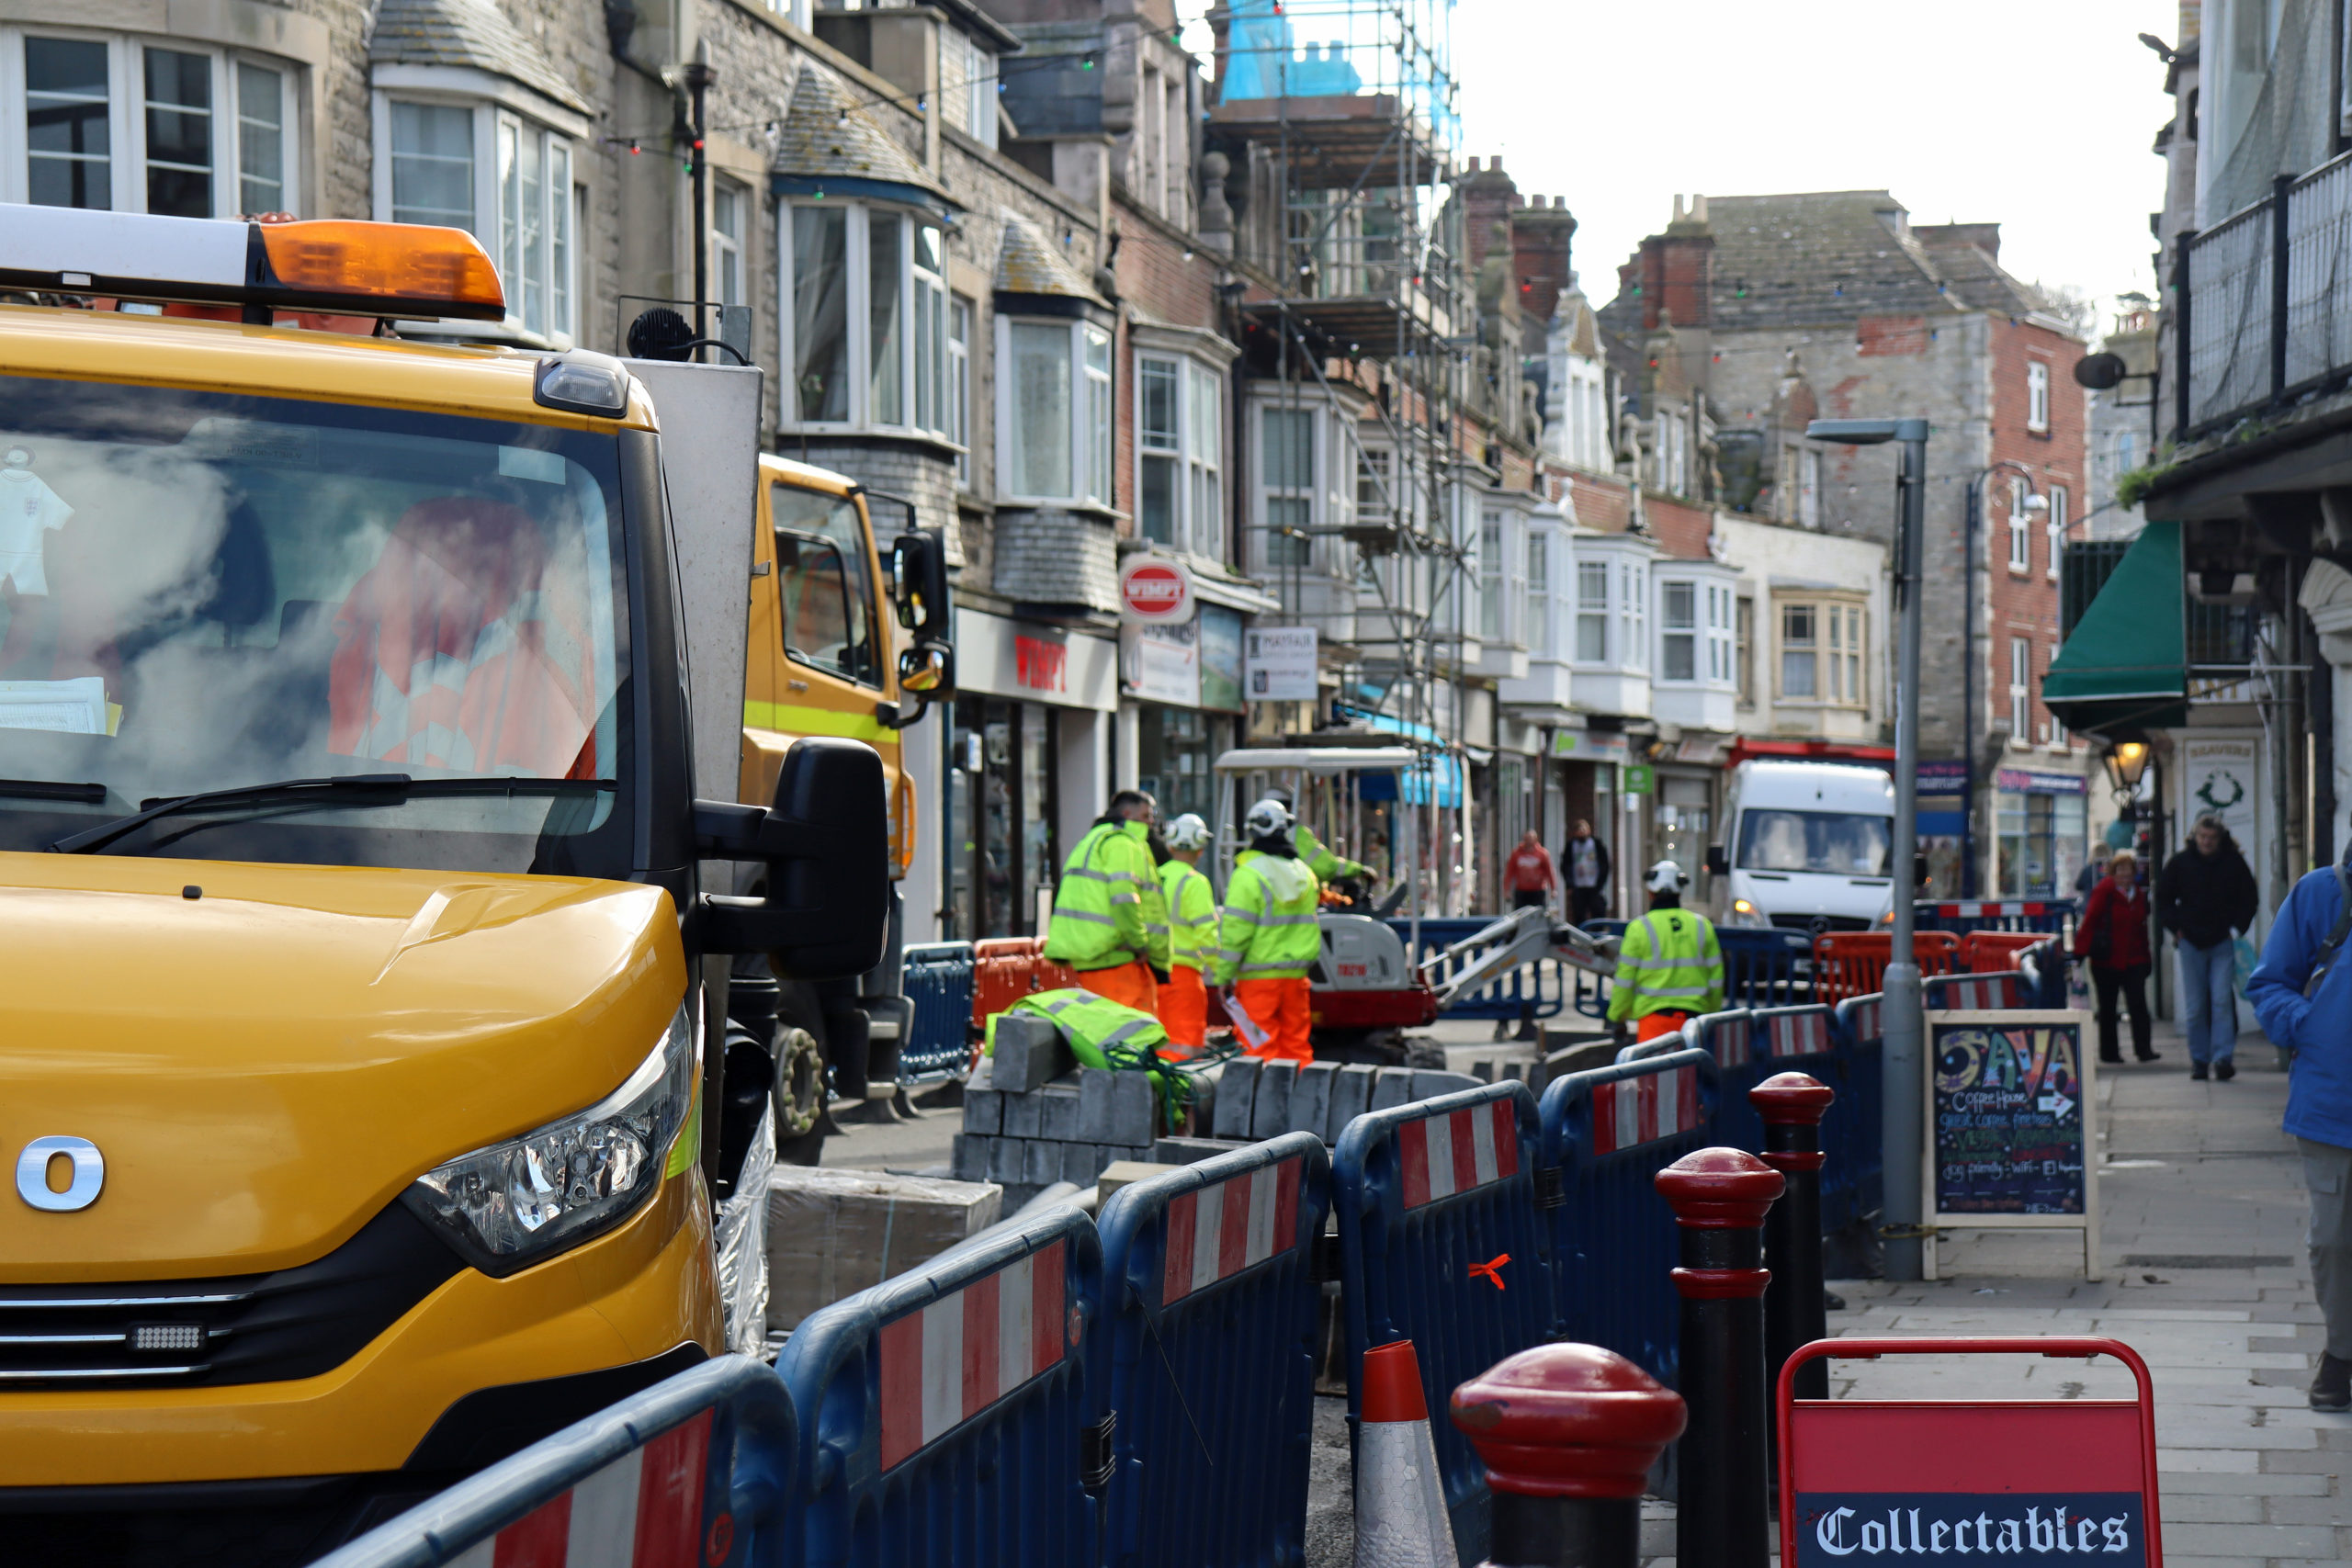 Workmen in Institute Road while it is closed for roadworks February 2020.